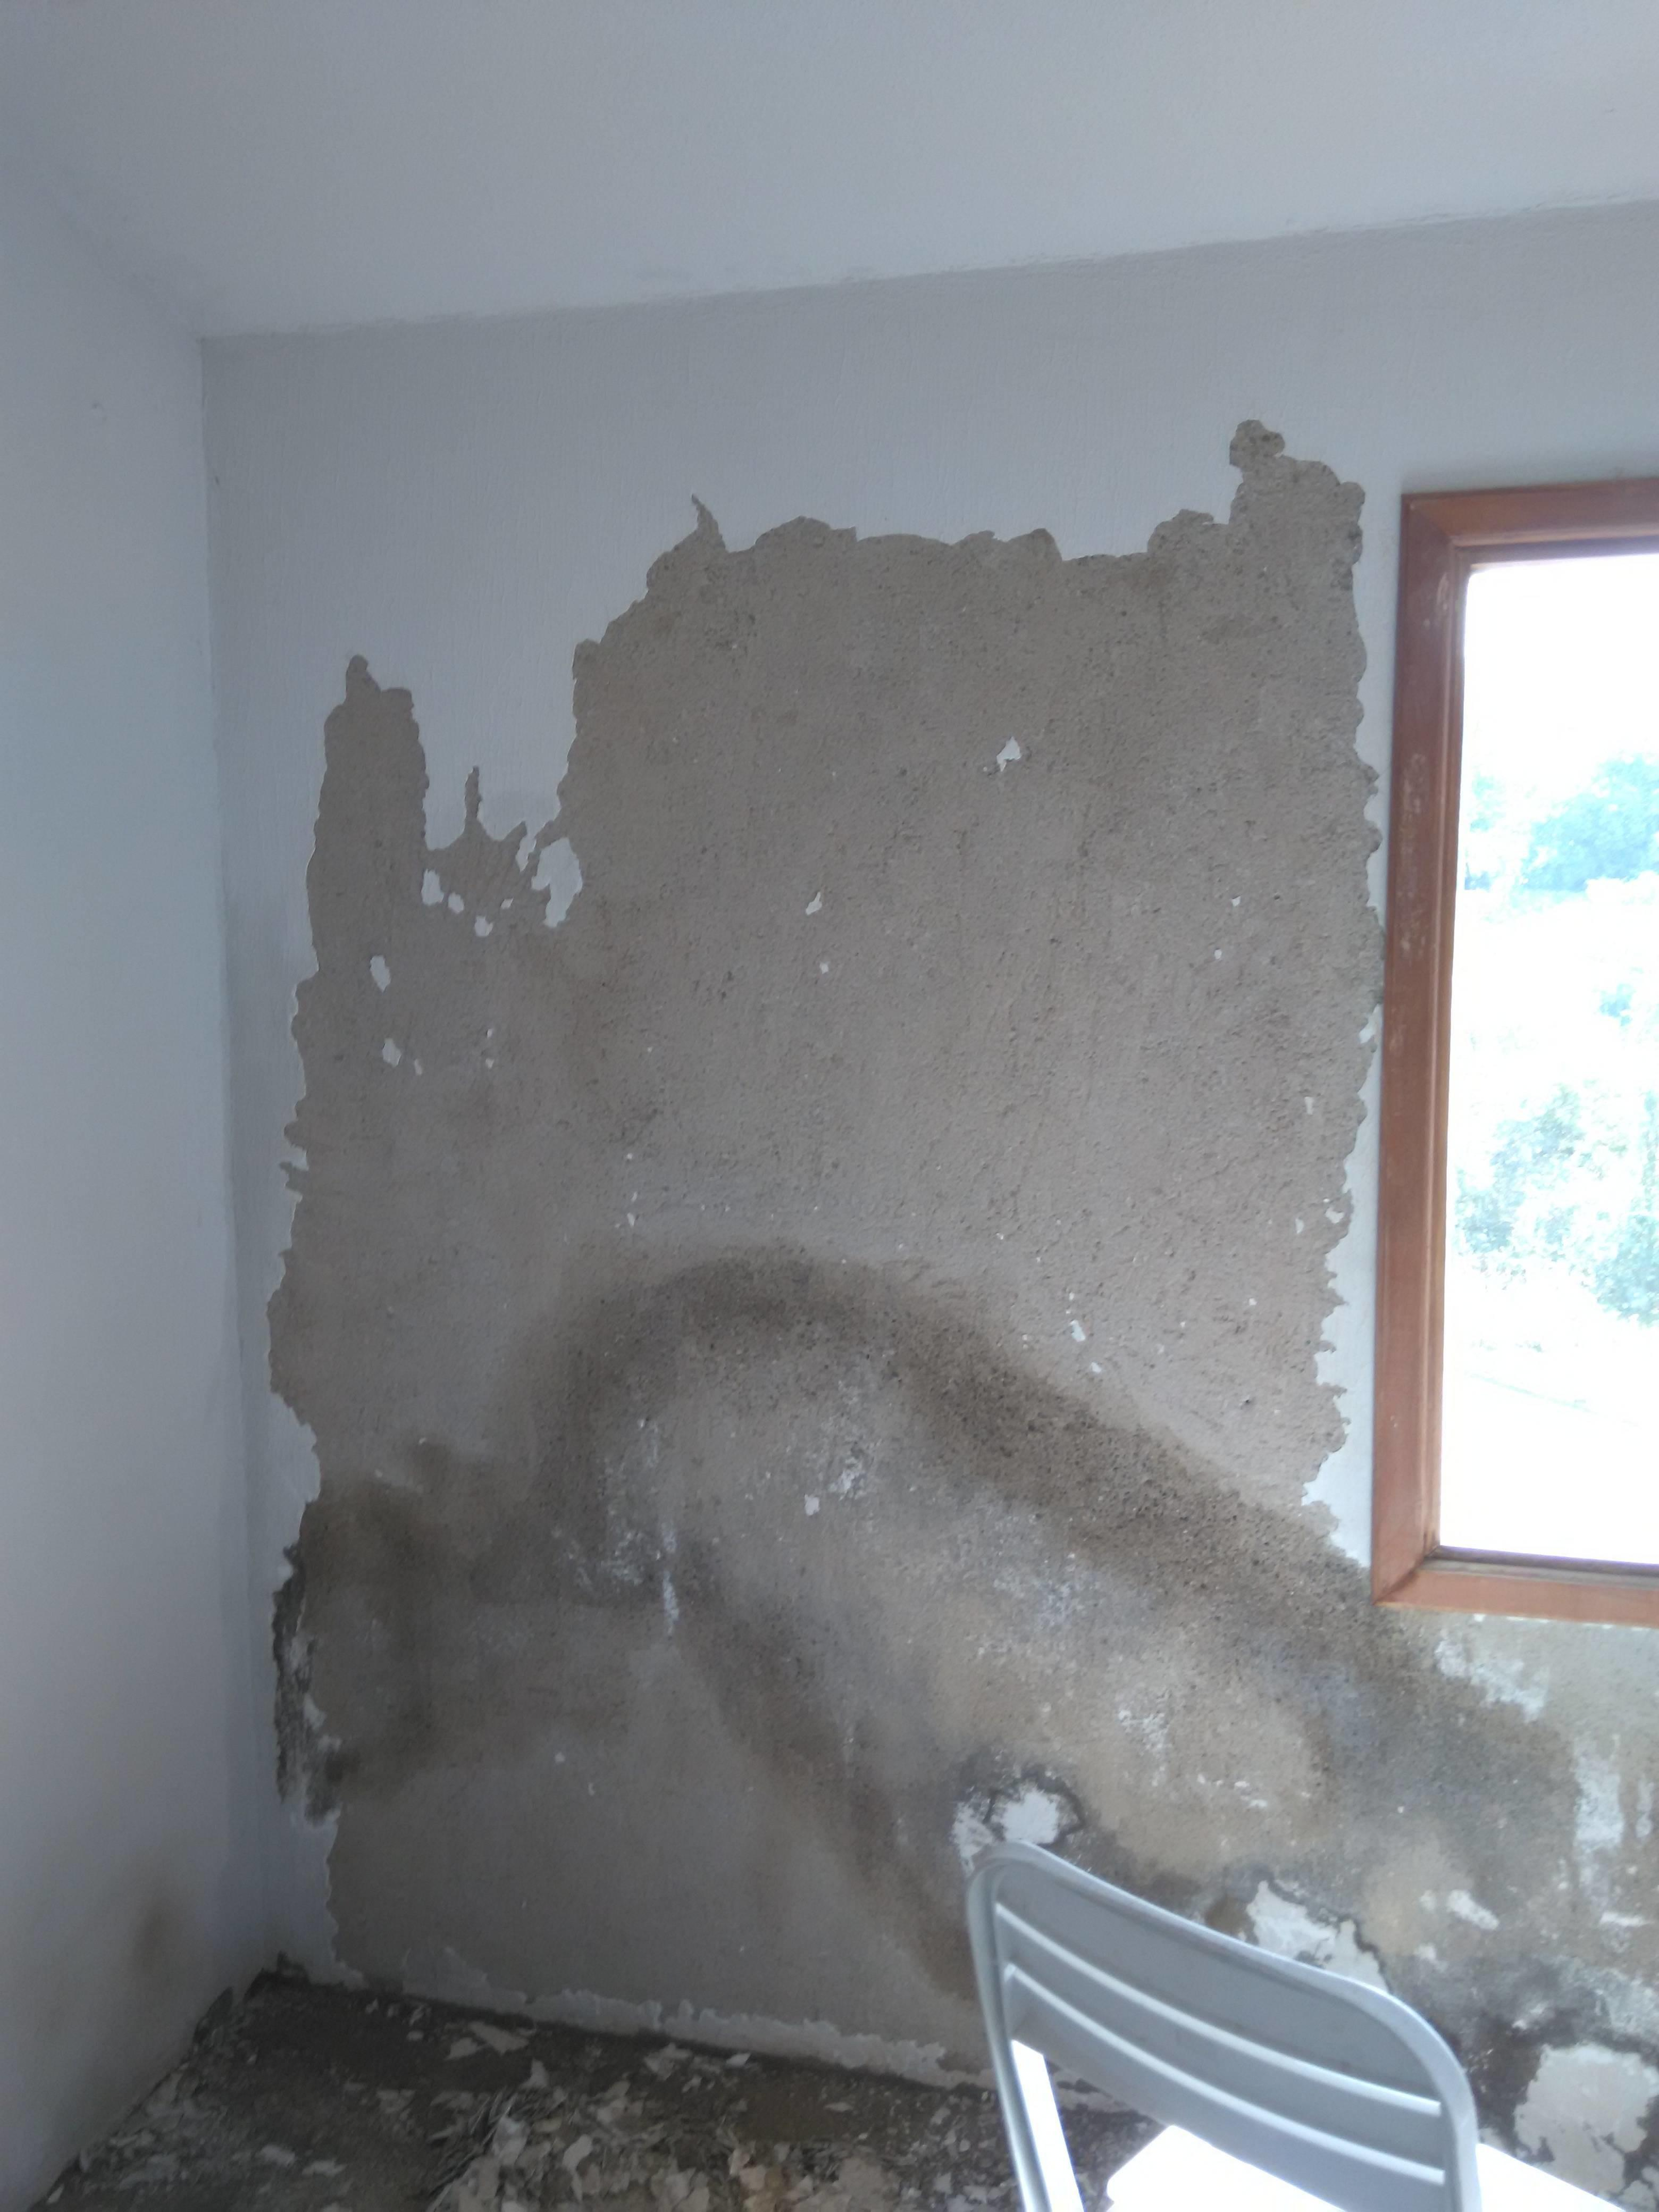 Poured Cement Wall Repair Stucco Home Improvement